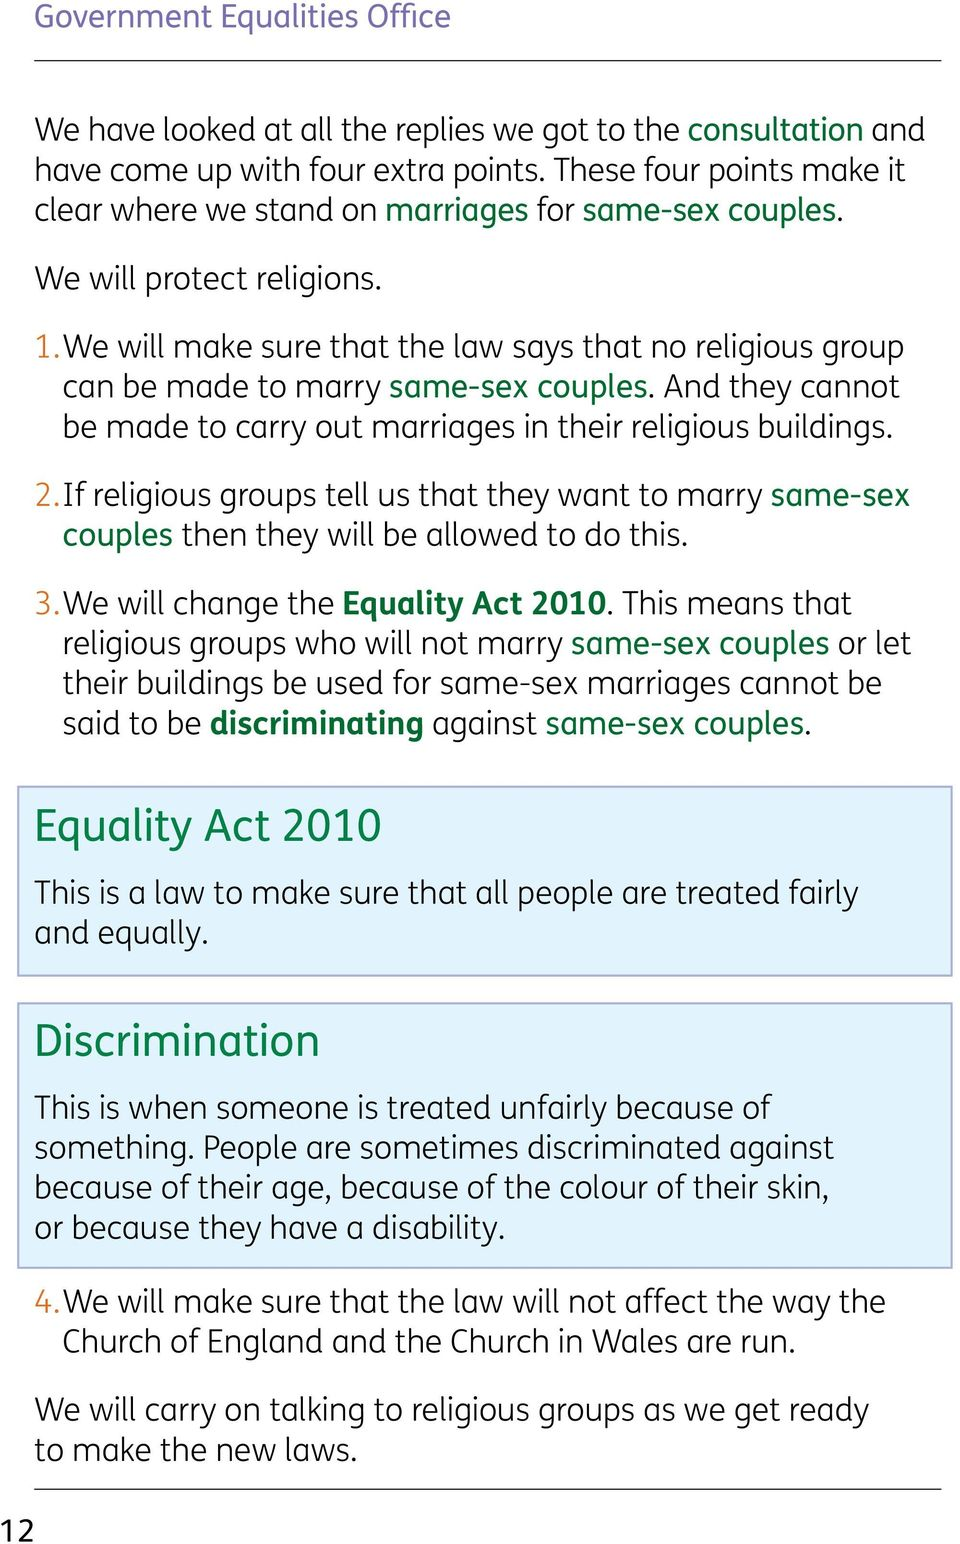 We will make sure that the law says that no religious group can be made to marry same-sex couples. And they cannot be made to carry out marriages in their religious buildings. 2.